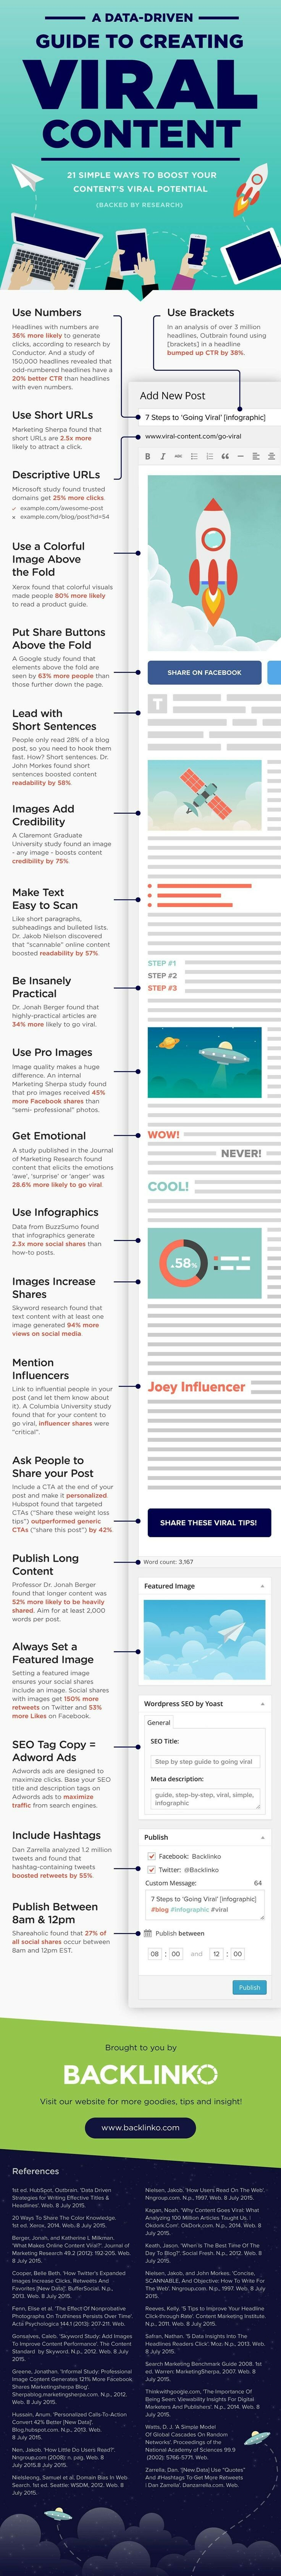 Guide to create a viral post #Infographic #SMM #Online